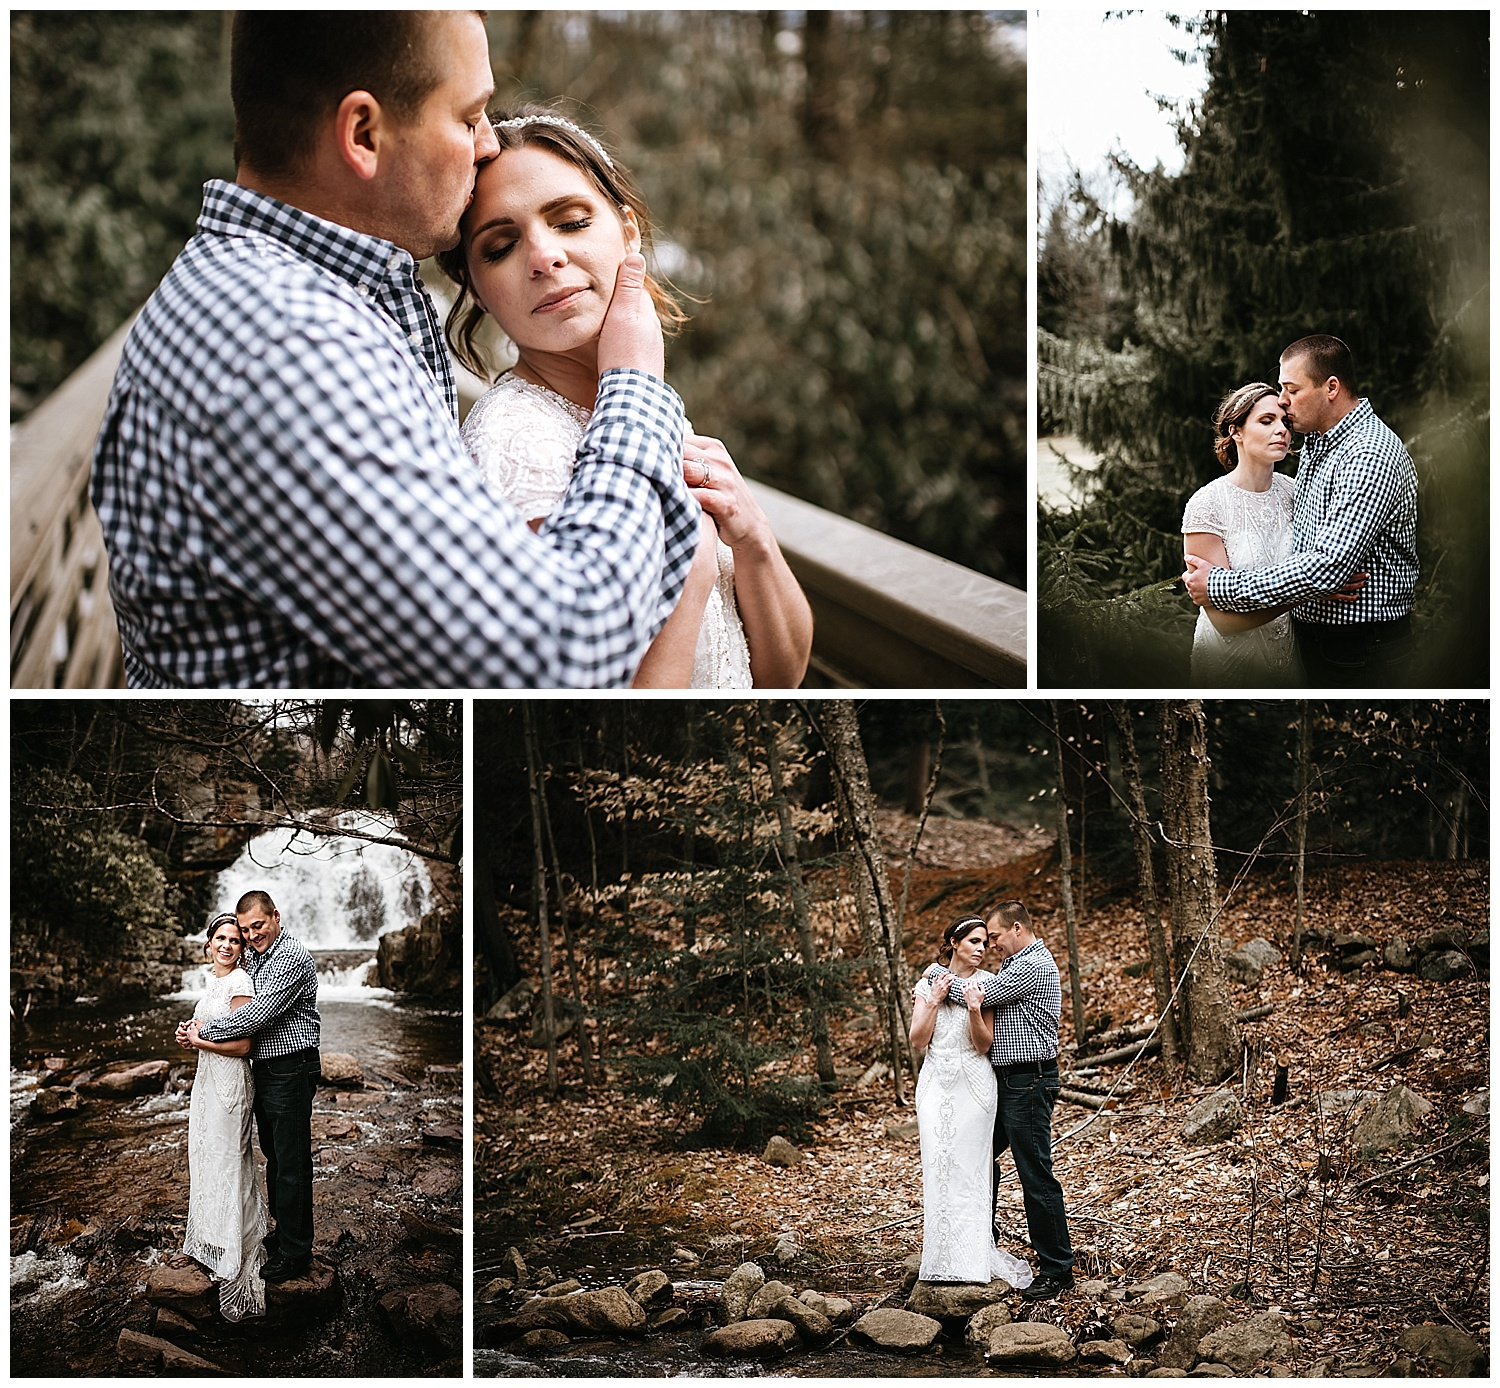 NEPA-Wedding-Engagement-photographer-hickory-run-state-park-hawk-falls-elopement_0029.jpg